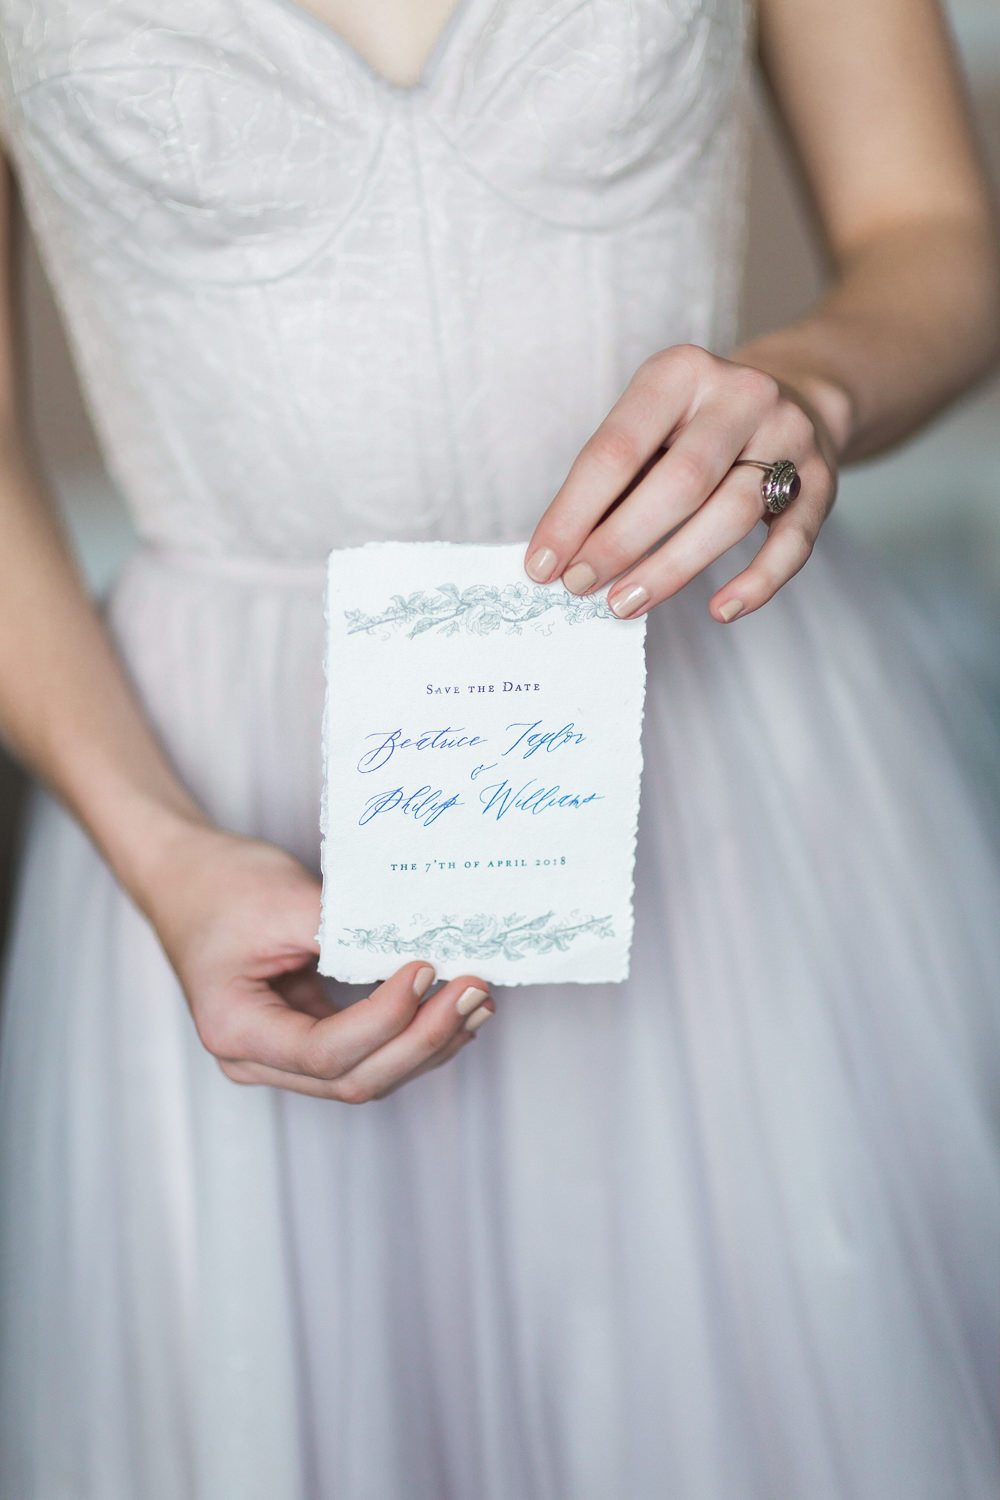 Modern Ballet Inspired Editorial Fine Art Somerley House Bride Lilac Dress Naomi Neoh Amethyst Ring Stationery Calligraphy Save The Date | Romantic Soft Wedding Ideas Siobhan H Photography